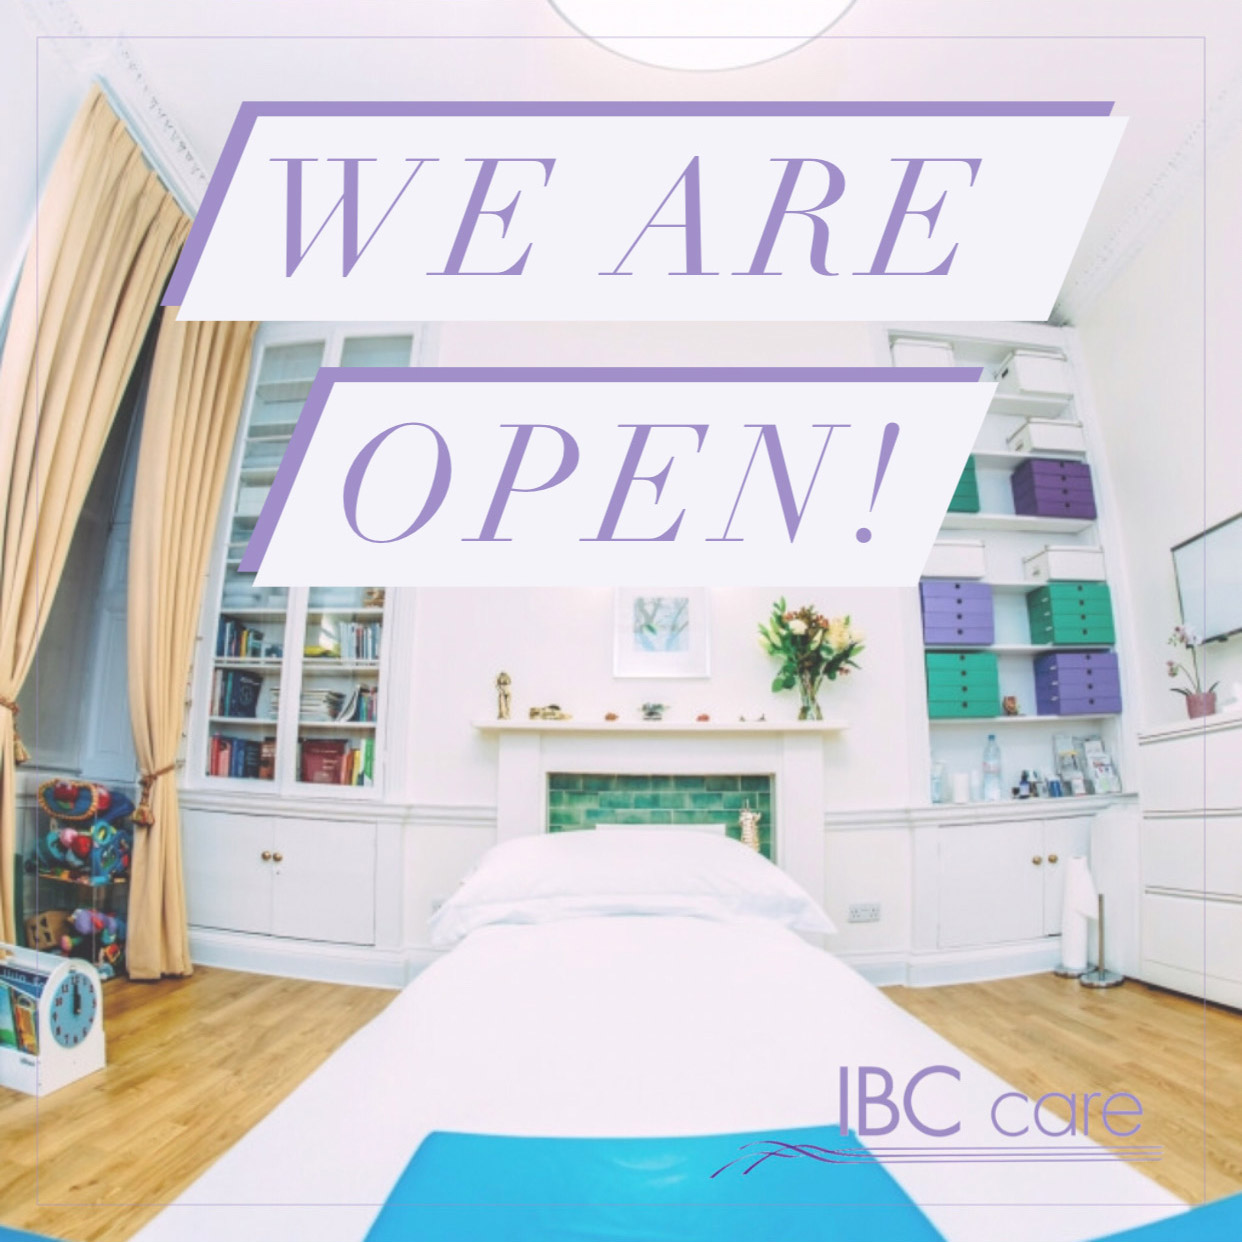 IBCcare is open.